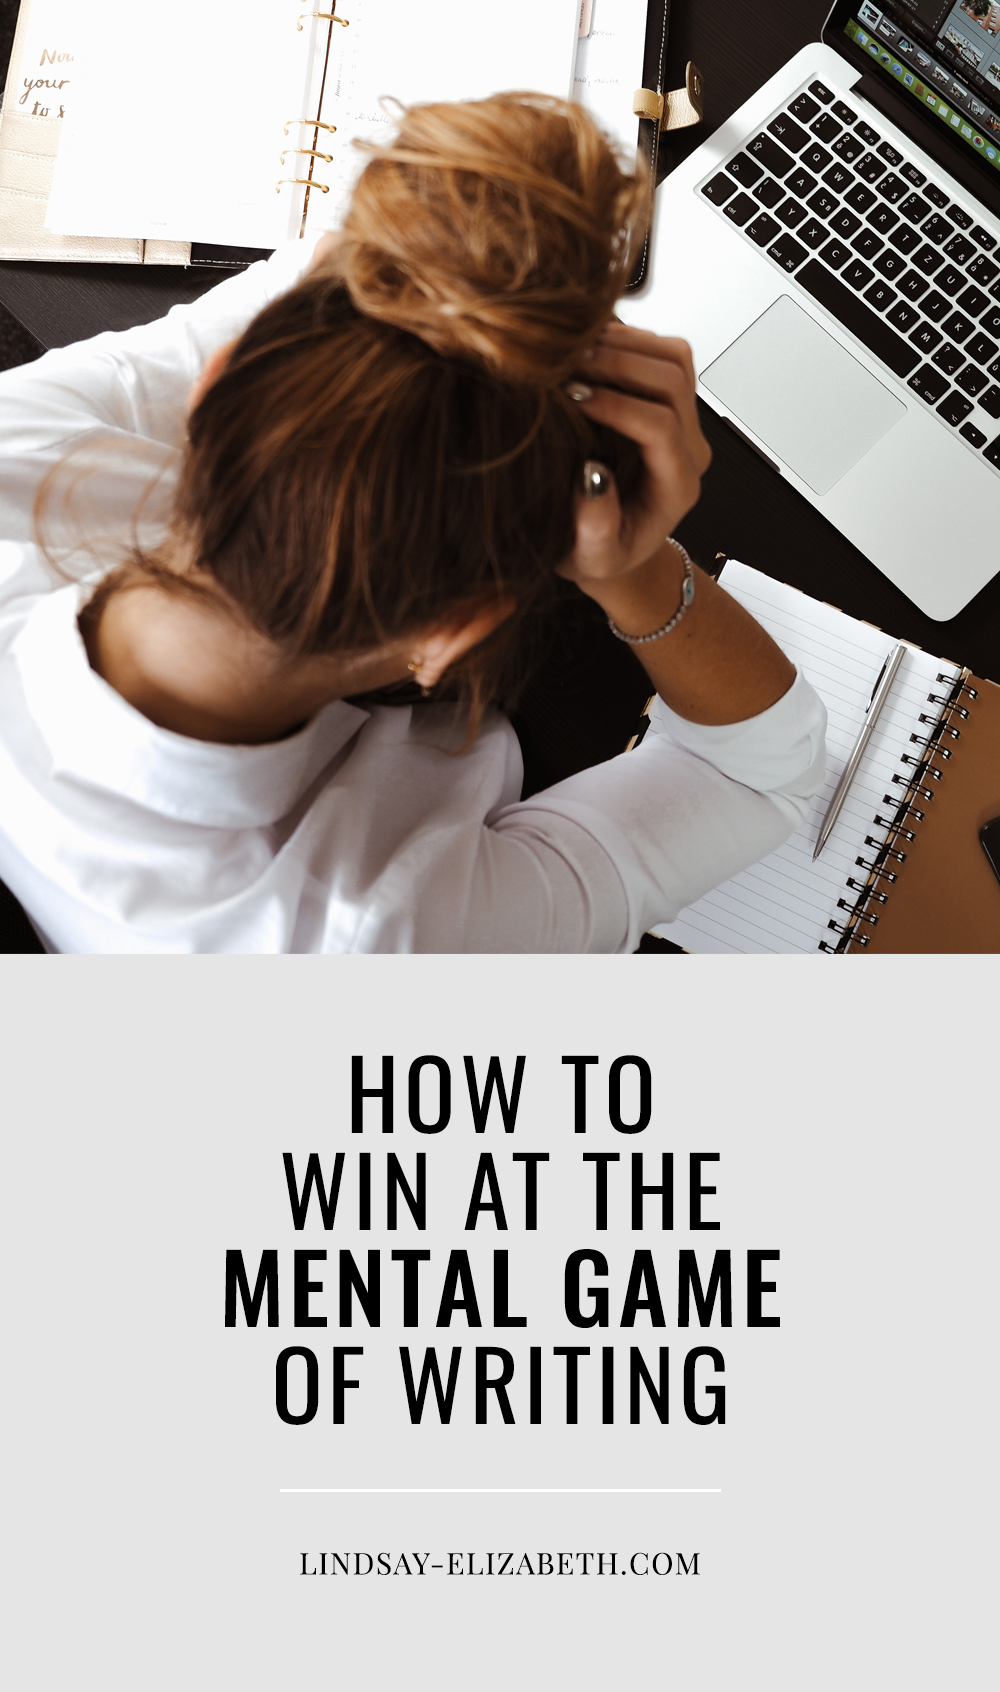 Writing can feel like magic sometimes but more often than not, it's hard work. One of the most challenging parts of writing a novel (or anything else) is the mental game. Fear and self-doubt go hand-in-hand with the writing process. Here are some tips that will help you prepare your mindset so you can finish writing your book and actually enjoy the process. #writinganovel #writingtips #writingadvice #nanowrimo